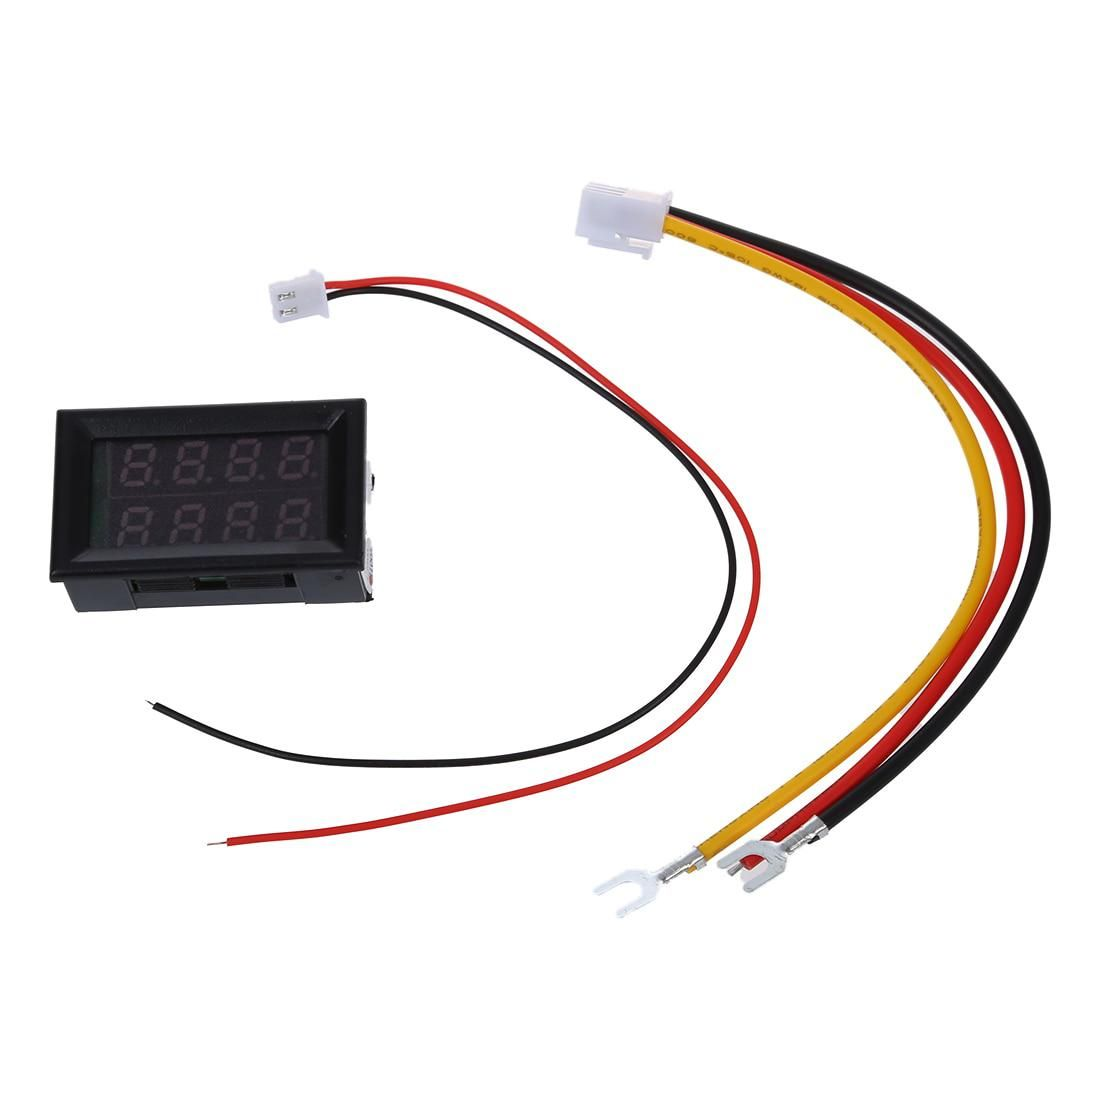 Voltmeter Ammeter Digital Multimeter Panel Meter Led Blue Wiring And Amp Red Yesterdays Price Us